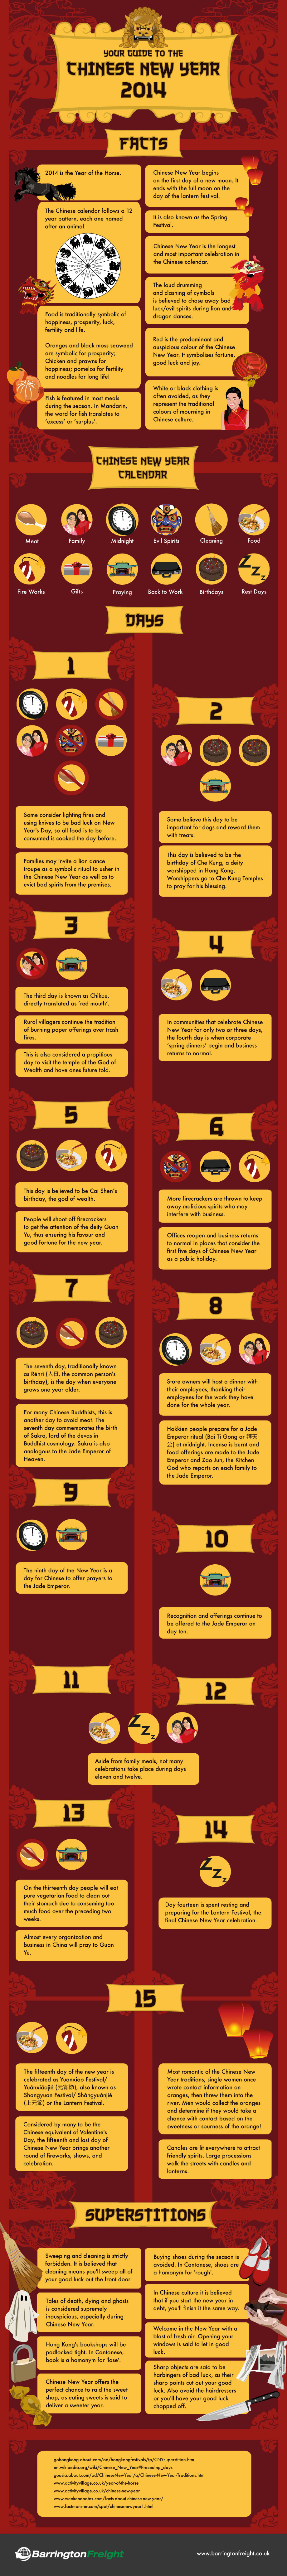 chinese-new-year-guide